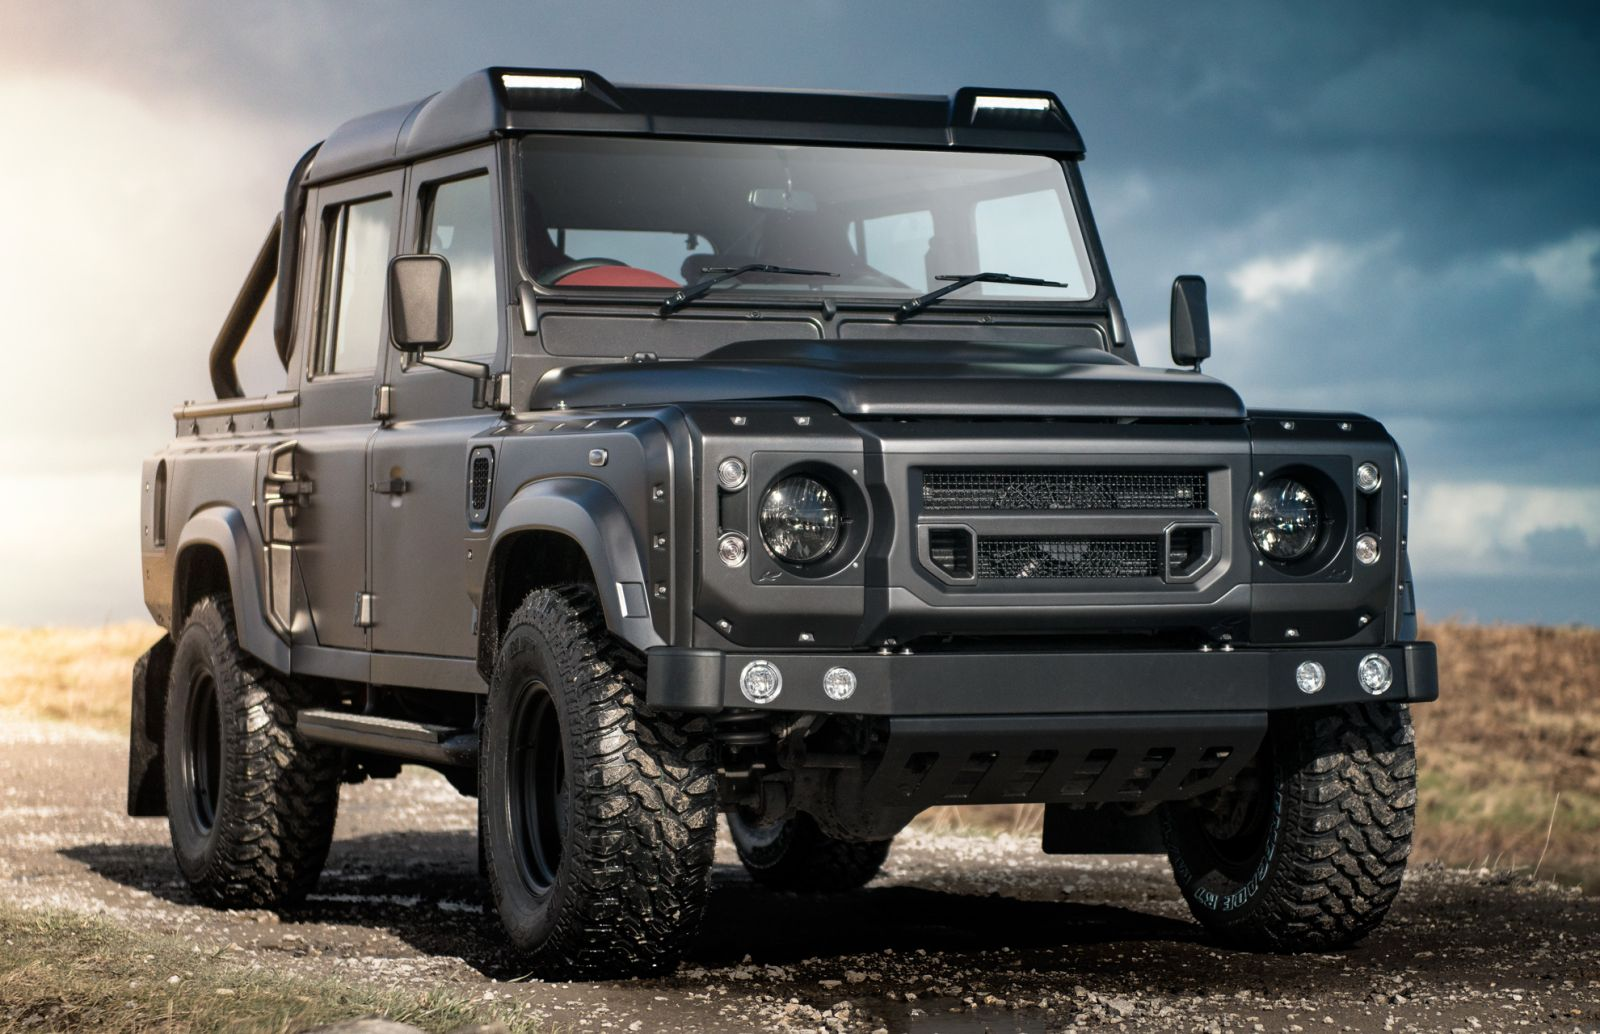 LAND ROVER DEFENDER - ROOF SHIELD WITH LED LIGHTS